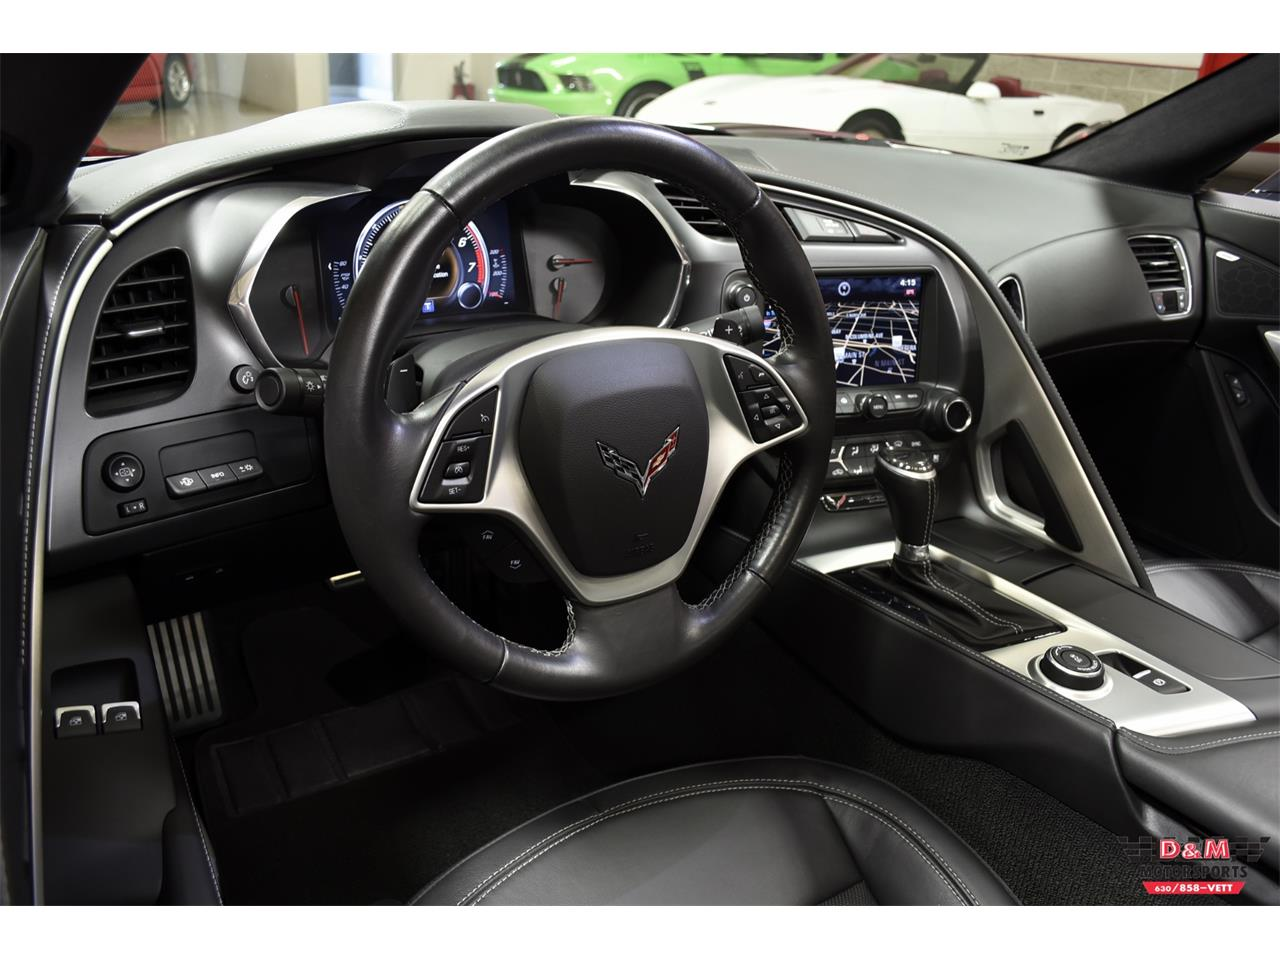 Large Picture of 2015 Chevrolet Corvette - $45,995.00 Offered by D & M Motorsports - QGAK